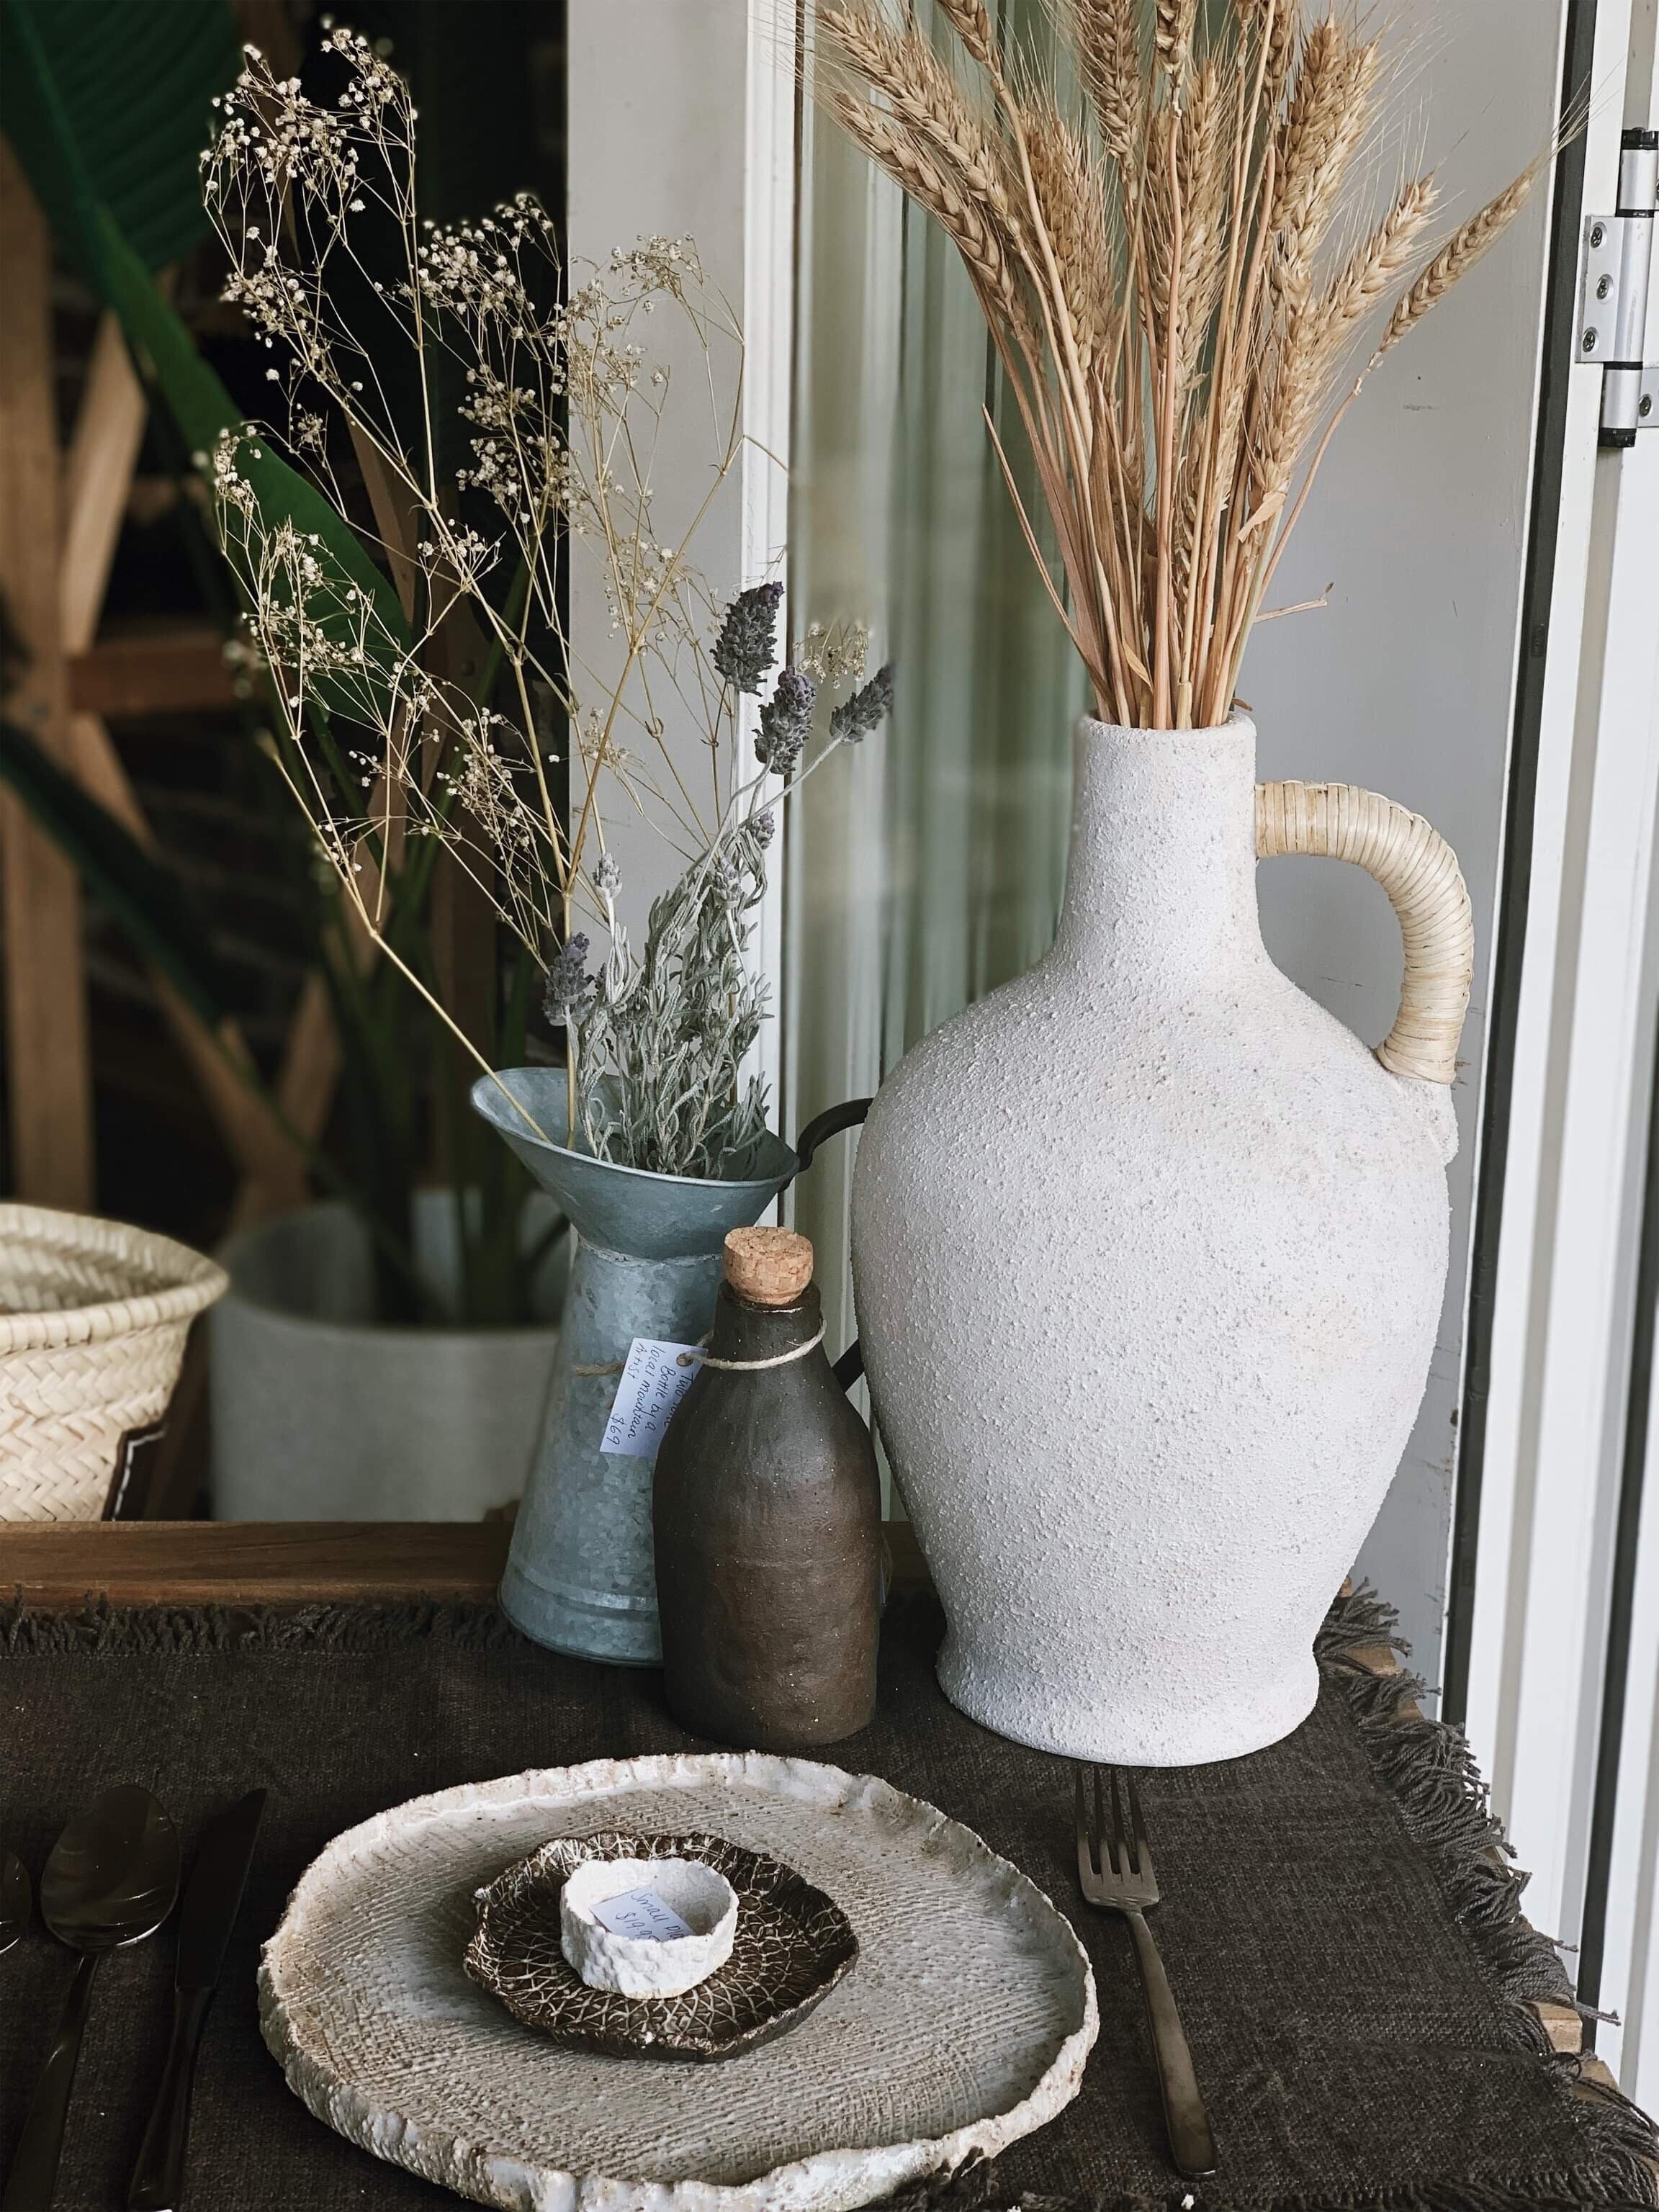 Village Folk - UNIQUE & EARTHY HOMEWARES FOR SIMPLE, BEAUTIFUL, SUSTAINABLE LIVING.